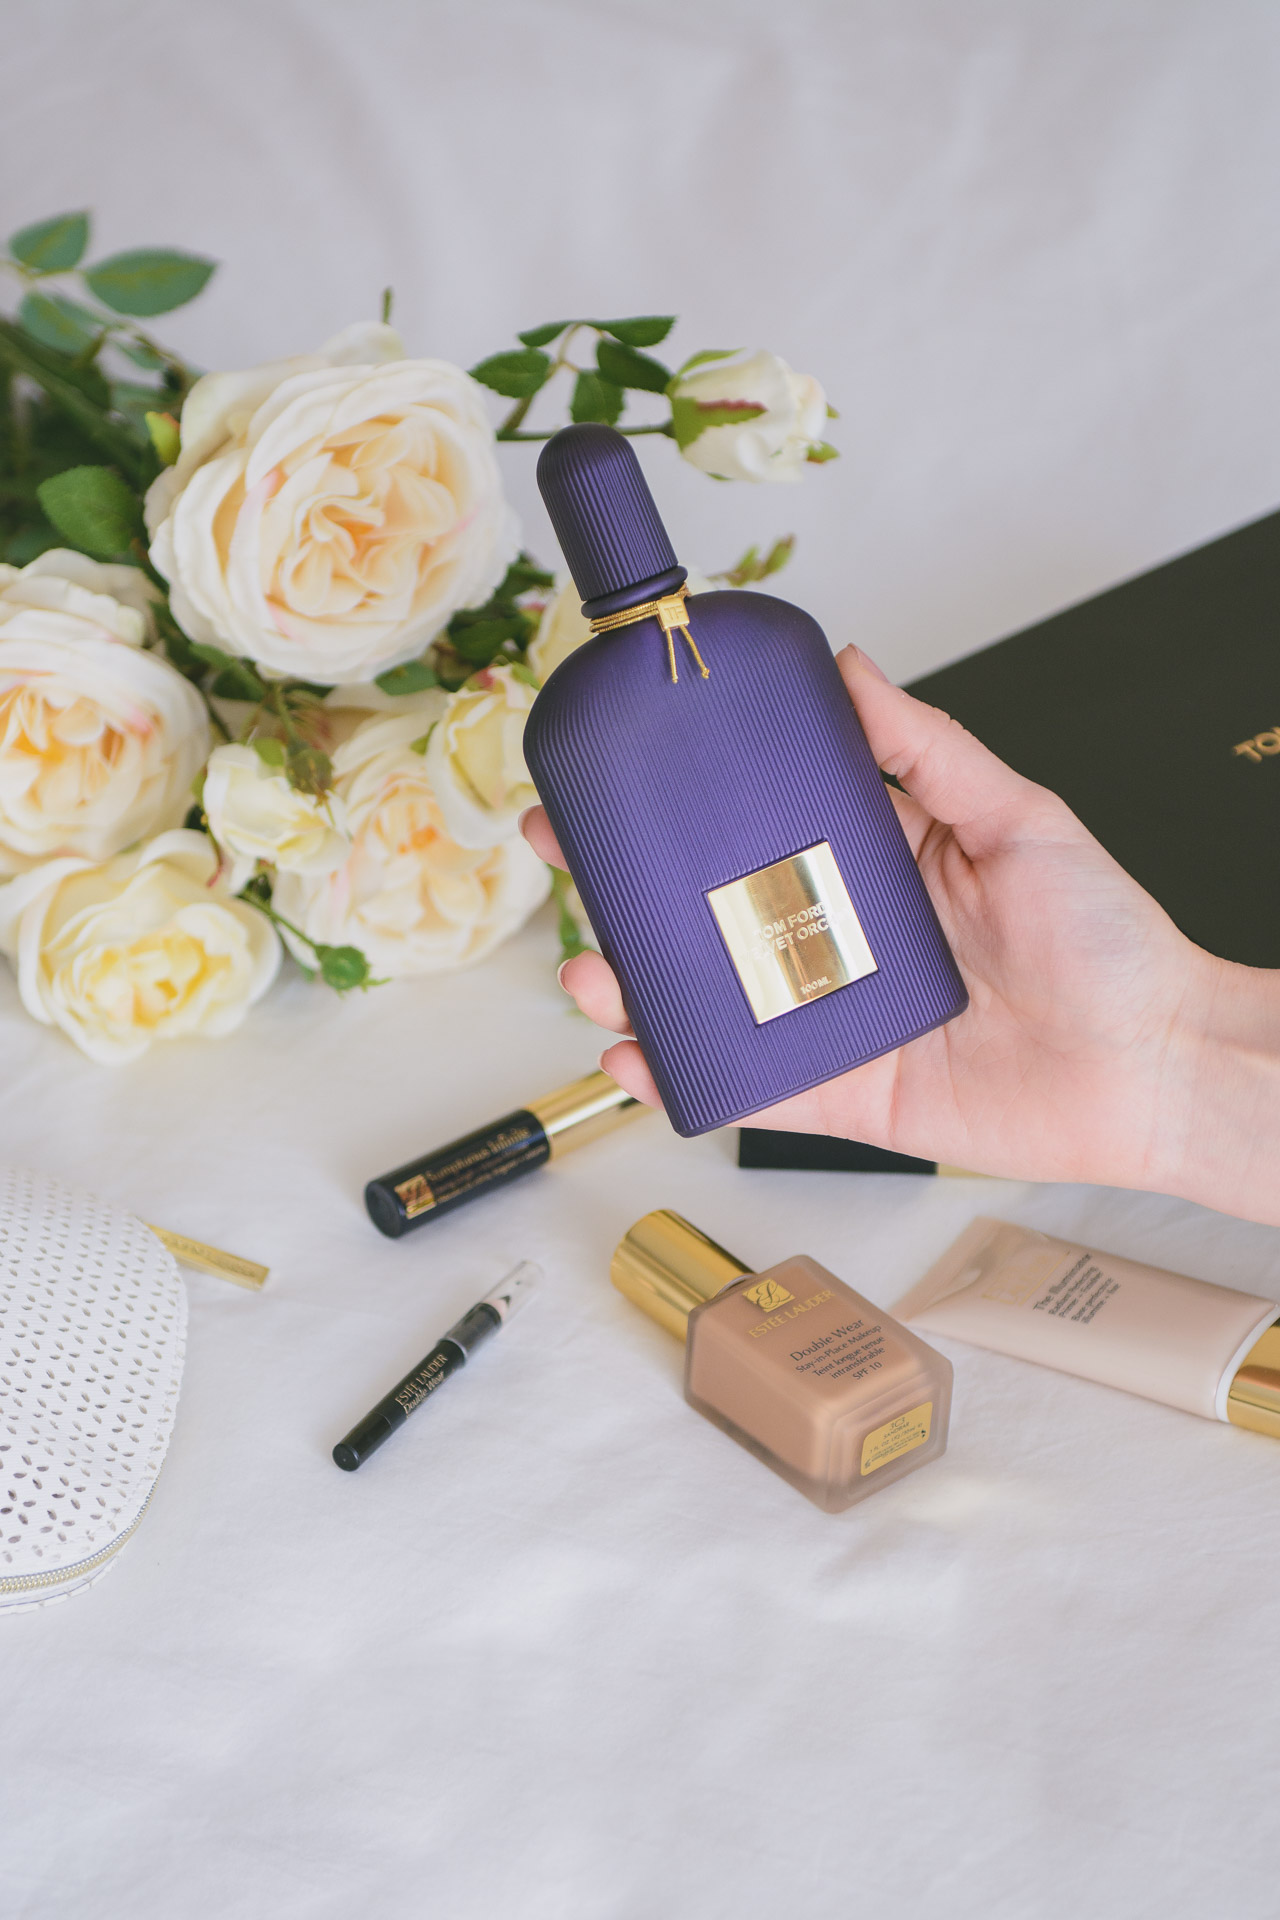 Tom Ford fragrance velvet orchid lumiere beauty favorite